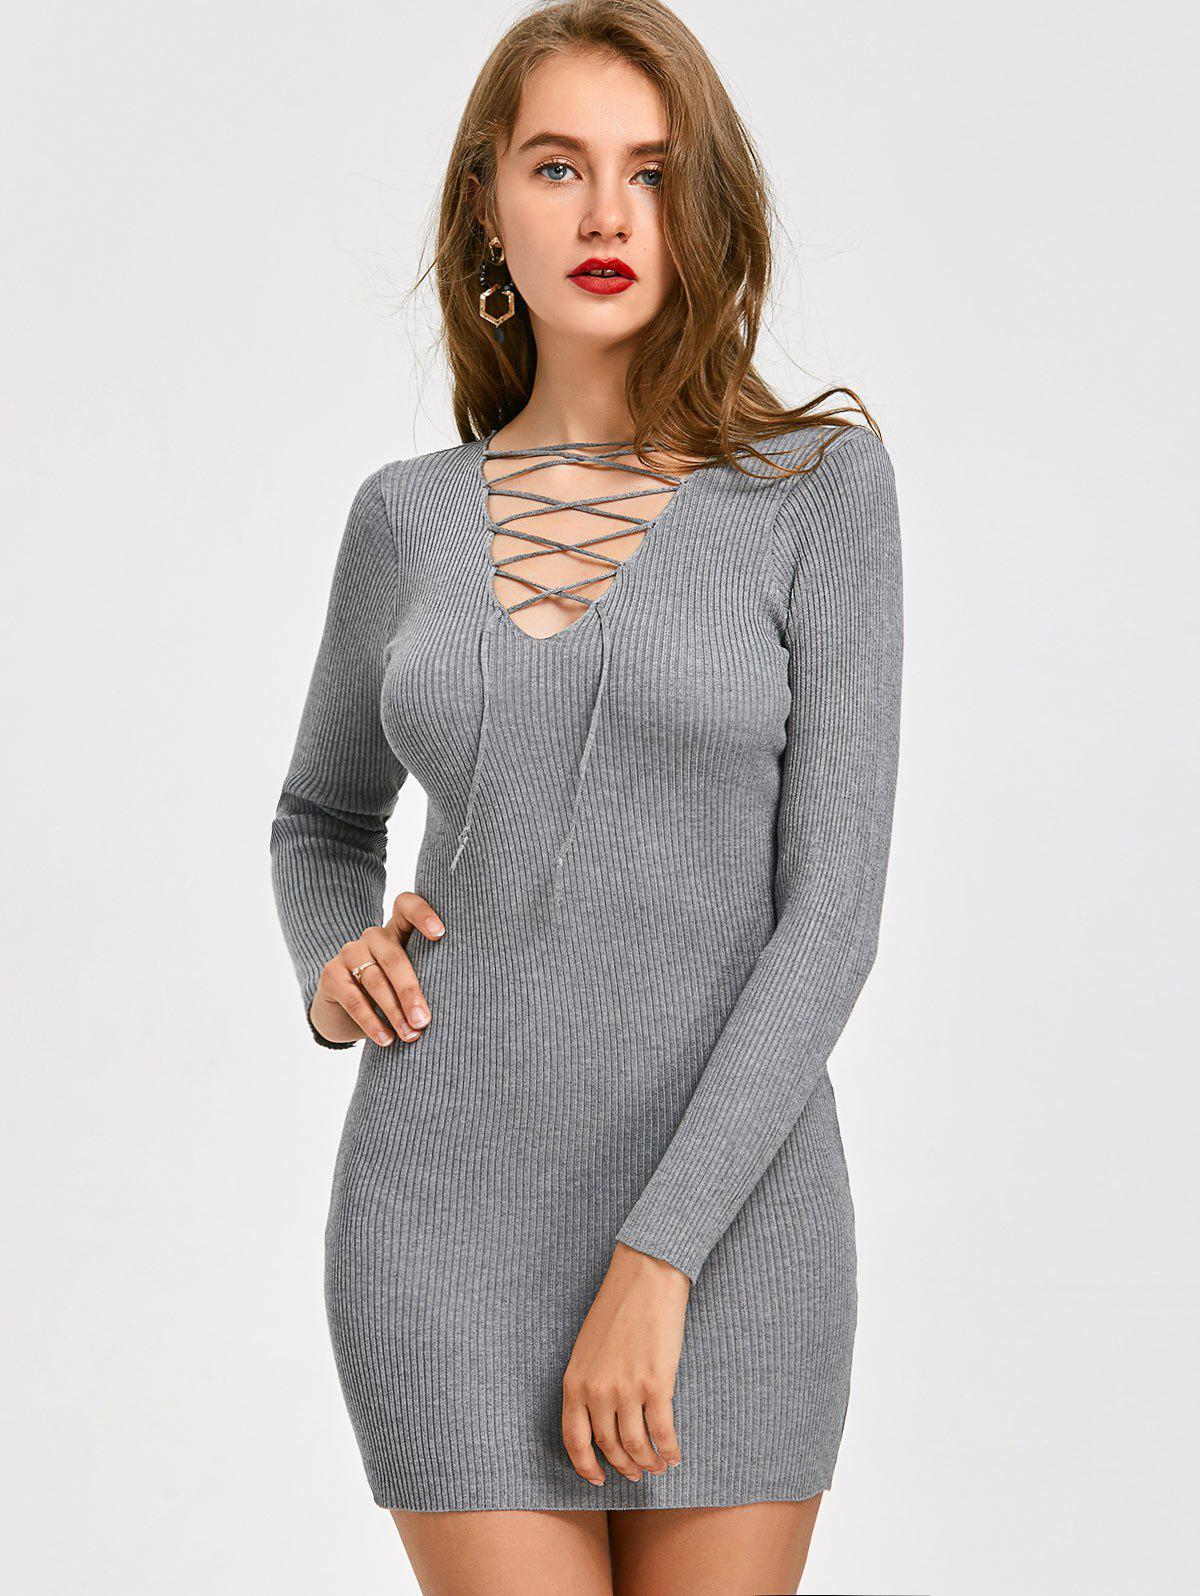 Lace Up Ribbed Mini Knitted Dress 232342103